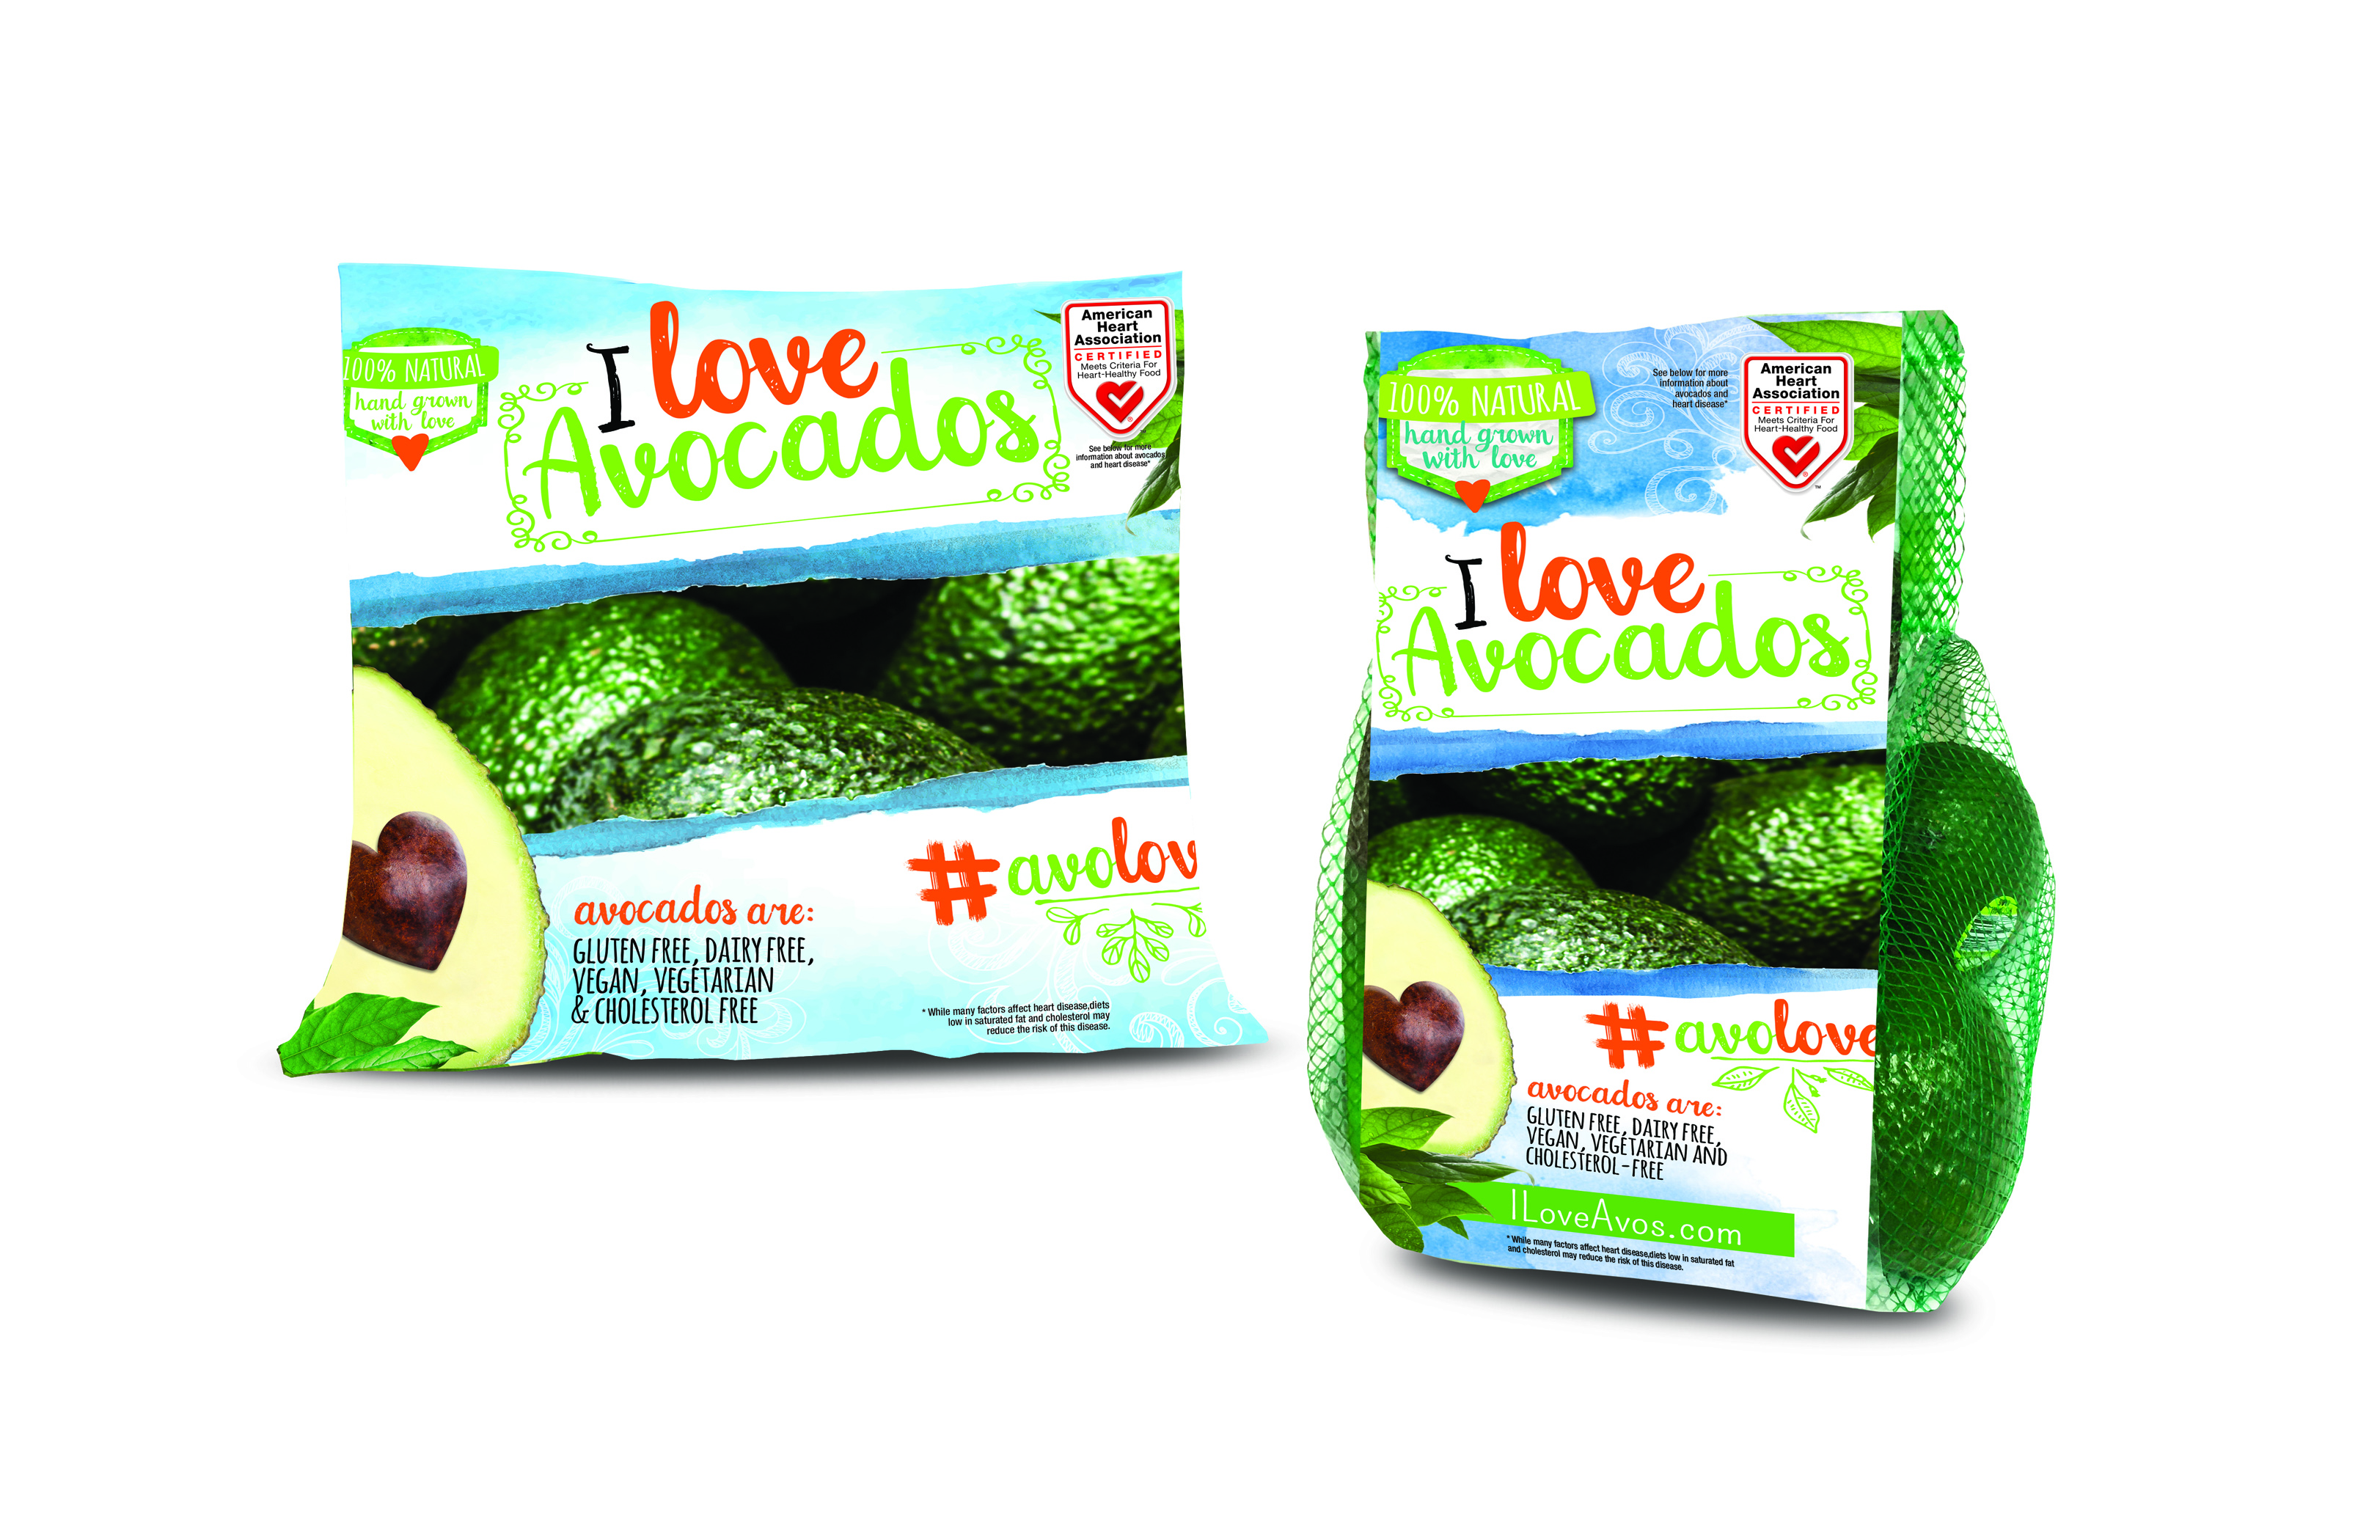 I Love Avocados Brand Earns Heart-Check Certification ...